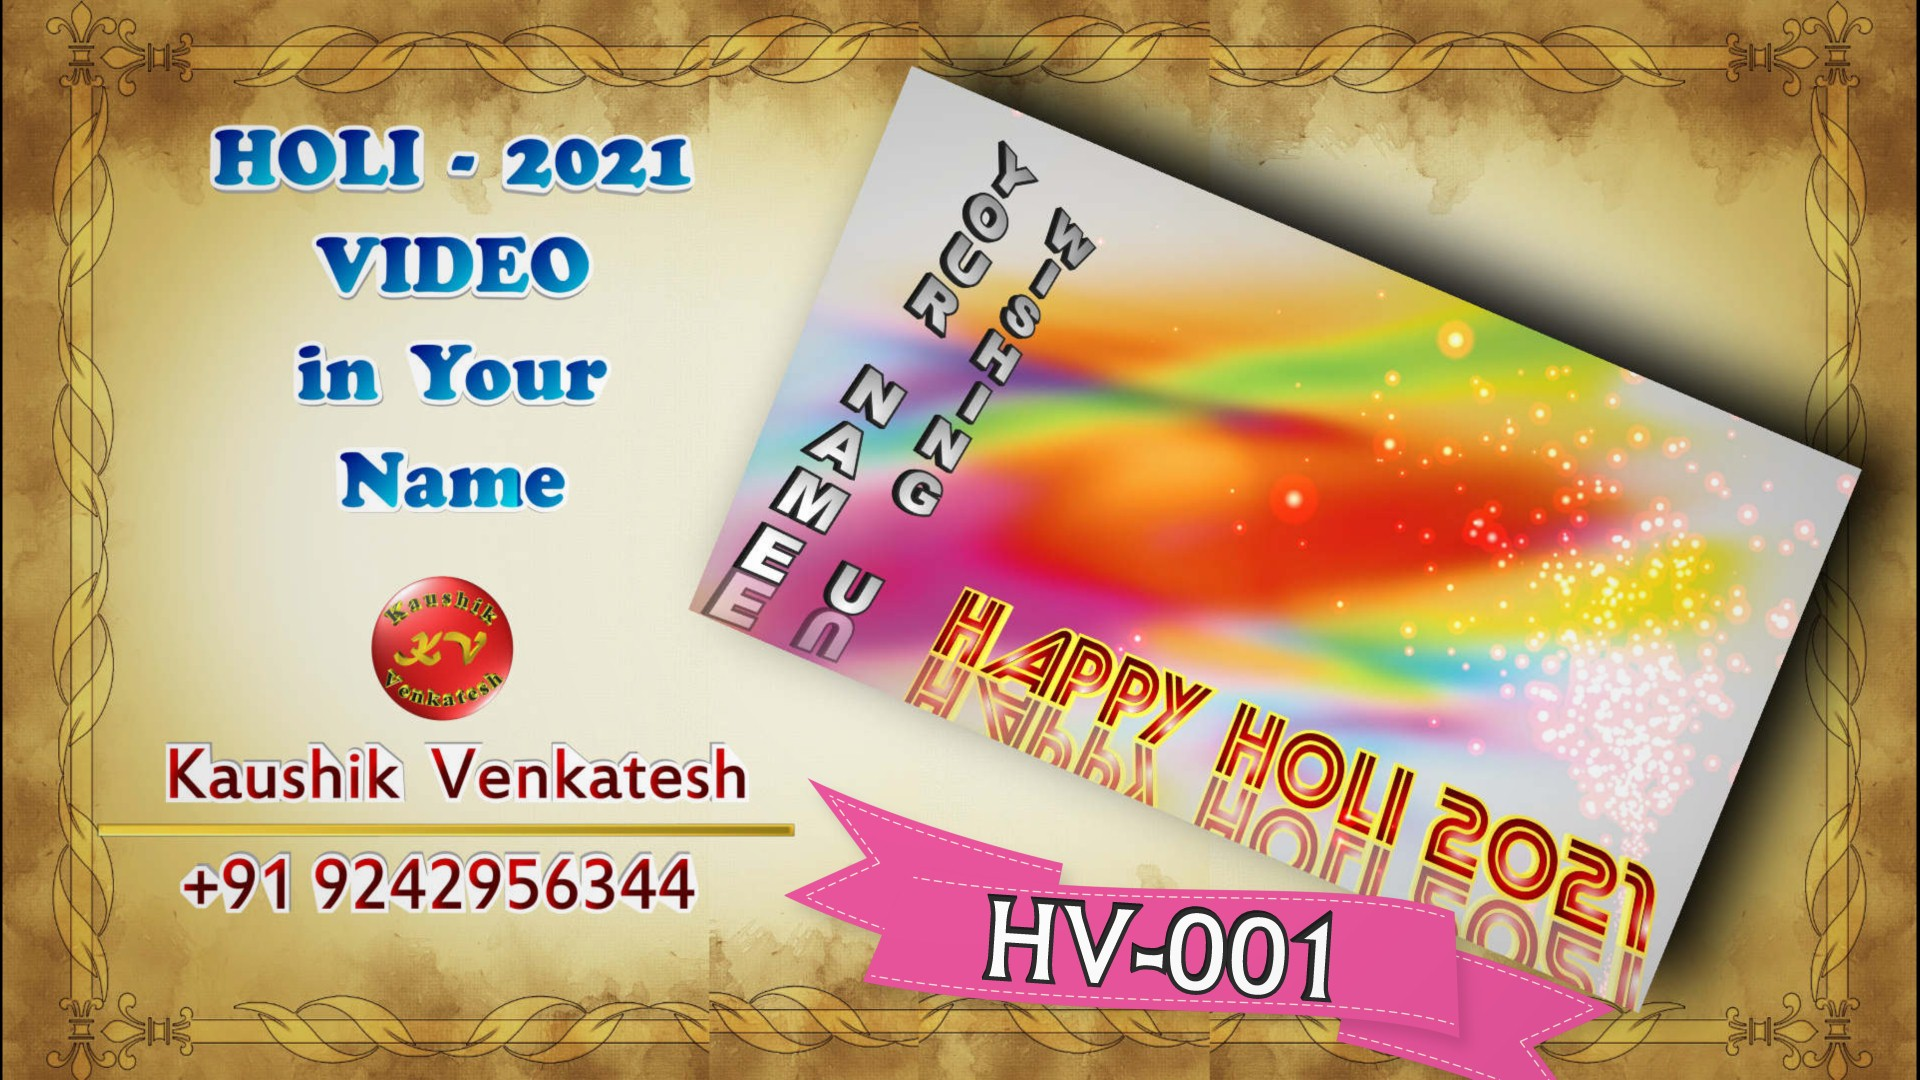 Holi Wishes in Your Name